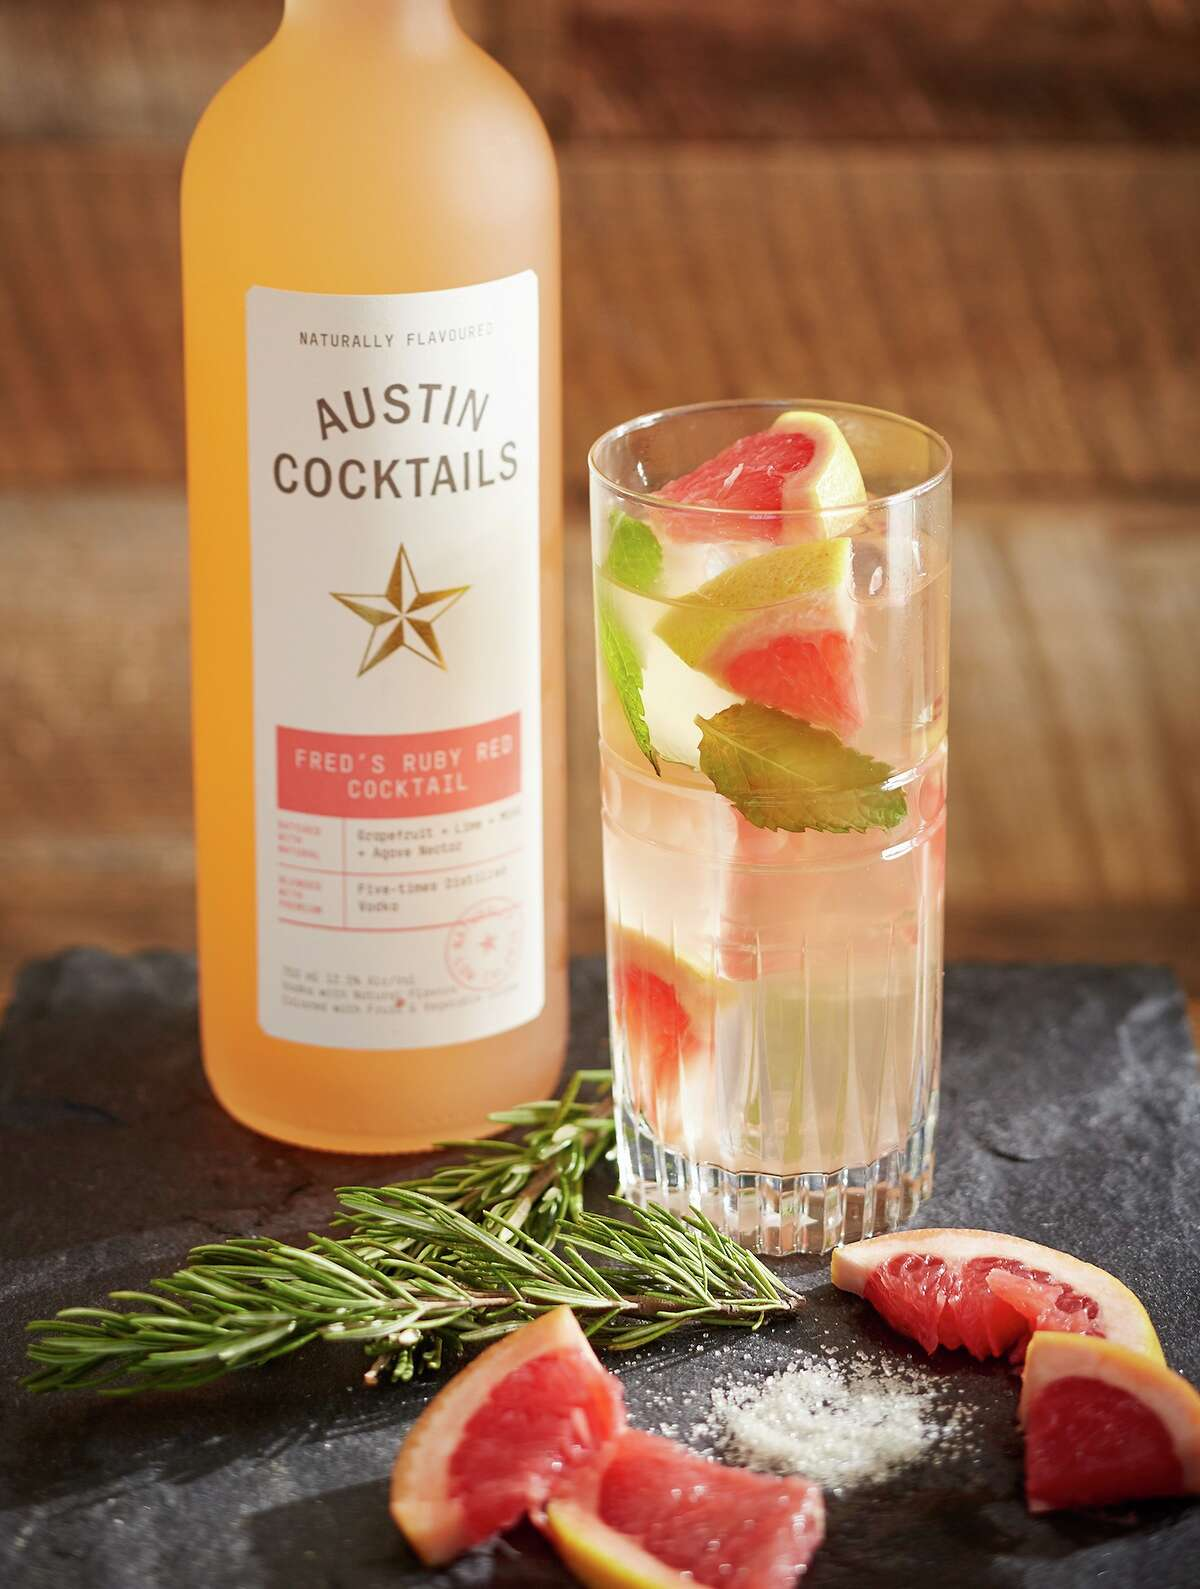 Austin Cocktails, the producer of ready-to-drink bottled craft cocktails has added Fred's Ruby Red Cocktail to its portfolio.